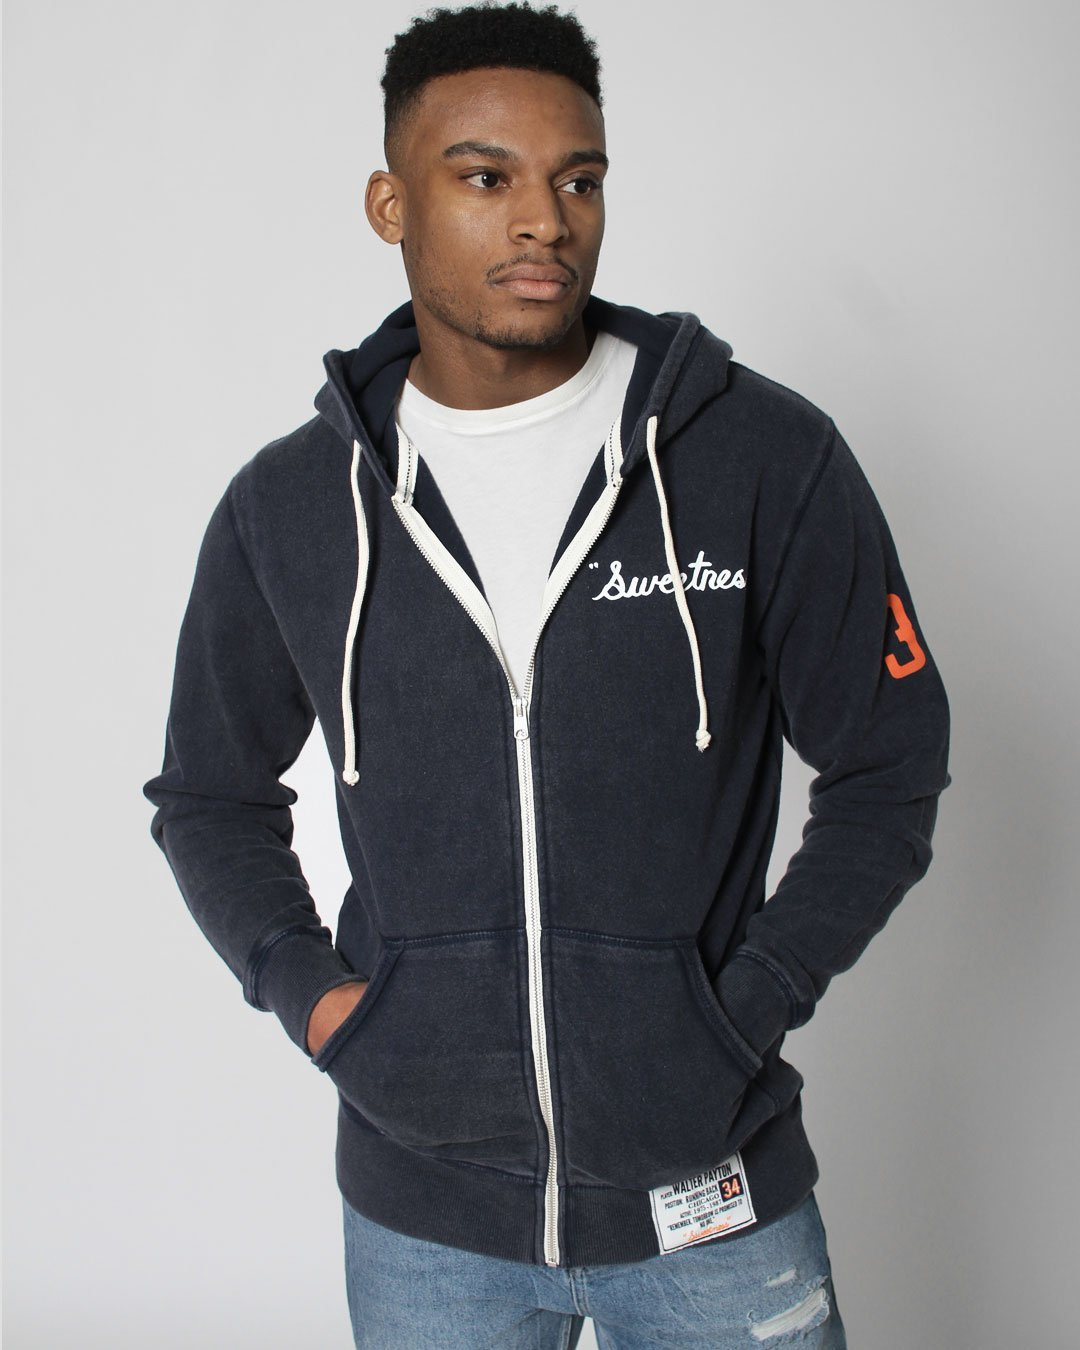 Walter Payton Sweetness Heritage FZ Hoody - Roots of Inc dba Roots of Fight